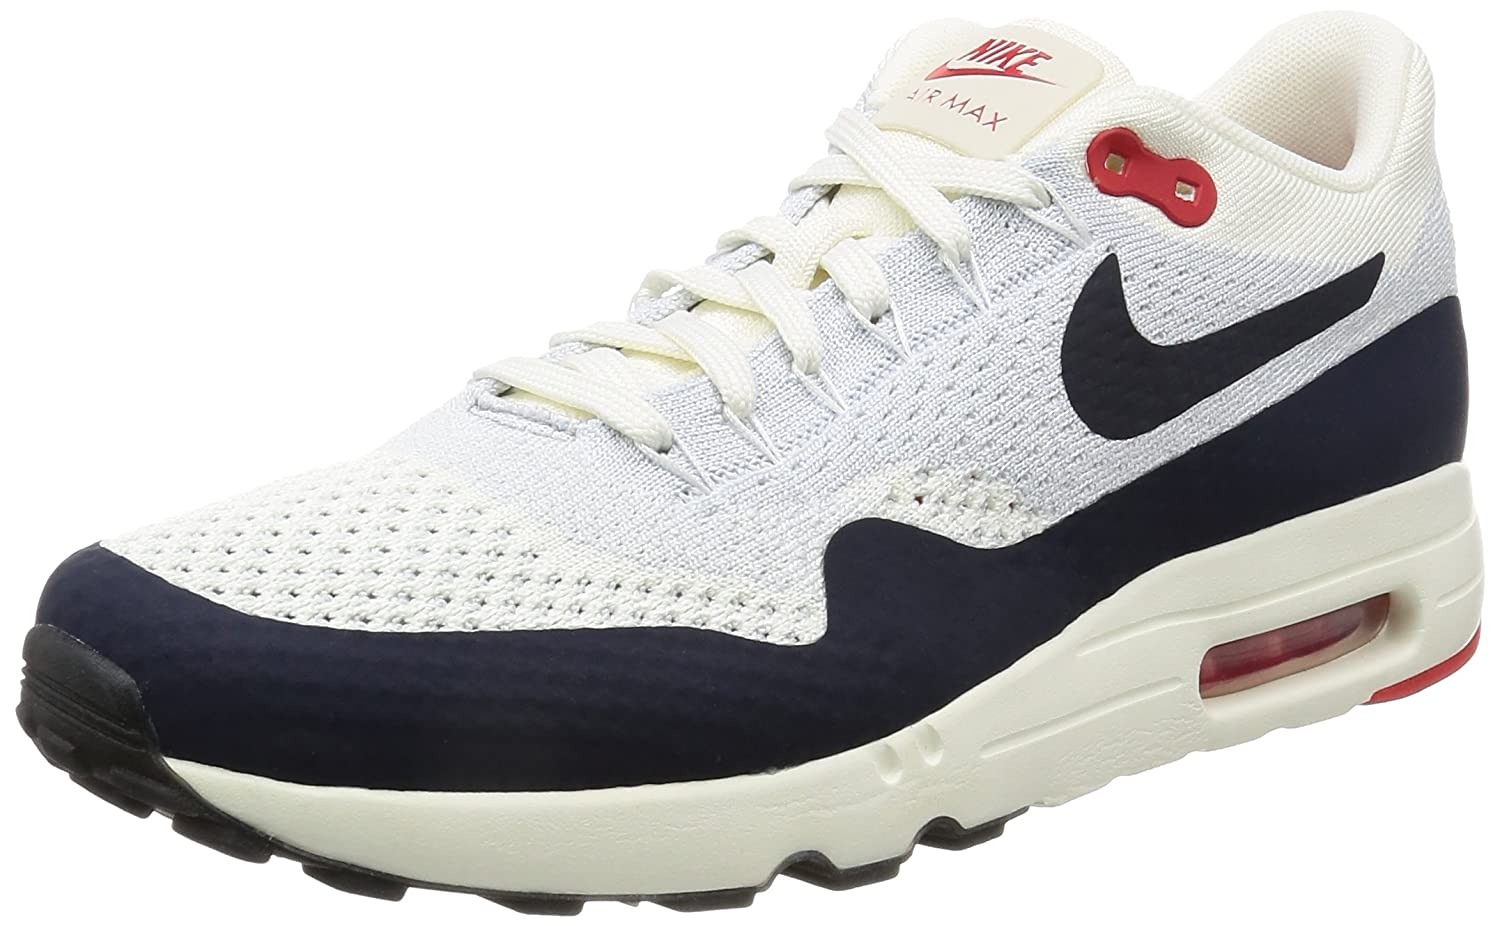 f45ae04dfbd04 Nike - Air Max 1 Ultra 20 Flyknit Obsidian - 875942100 - Pointure  42.5   Amazon.fr  Chaussures et Sacs